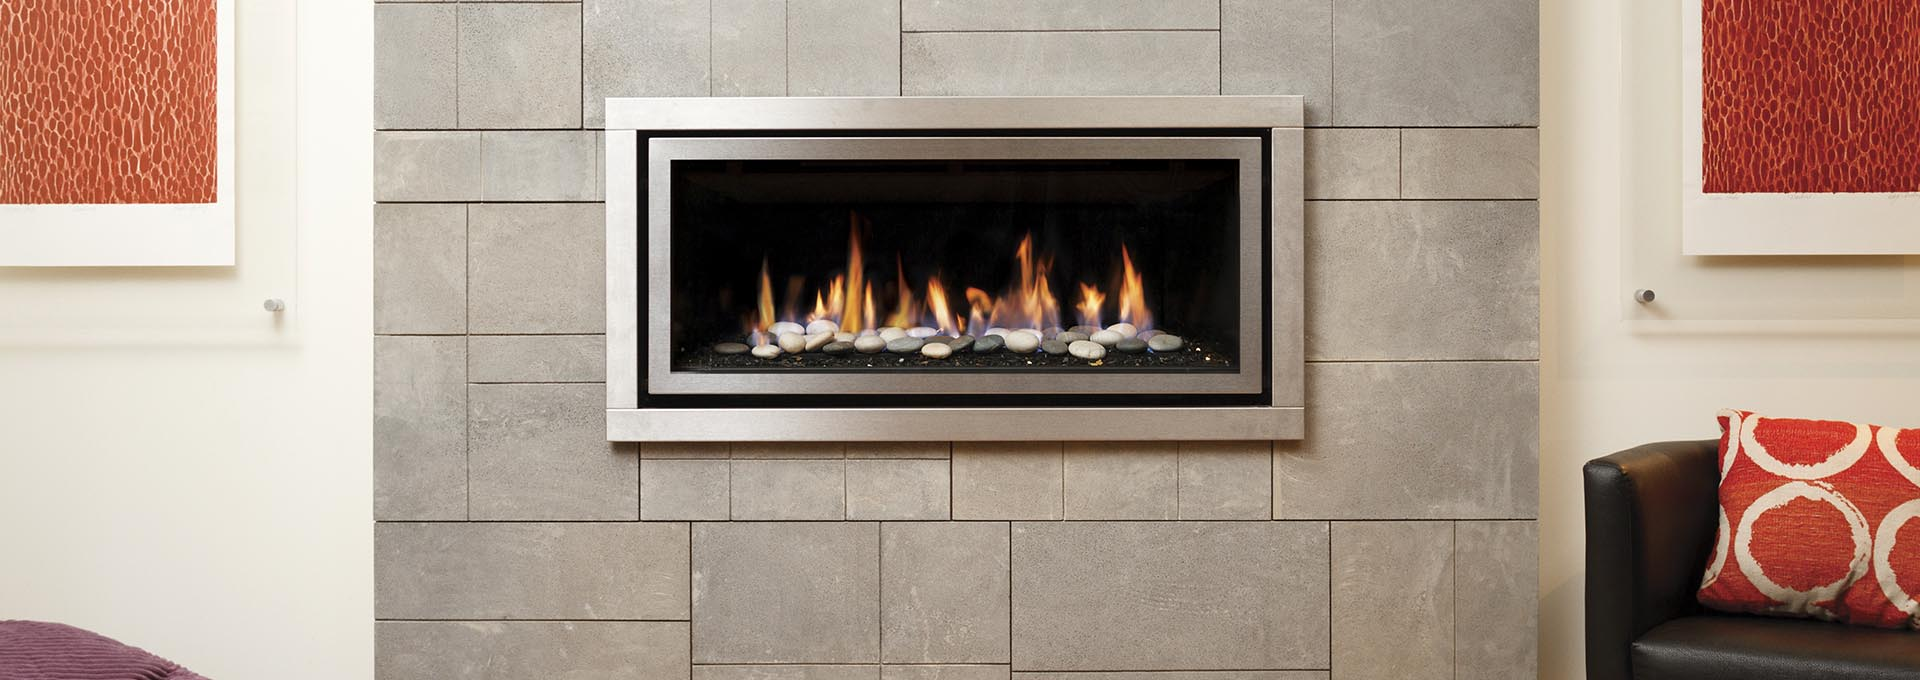 greenfire gf900c gas fire gas fireplaces regency fireplace